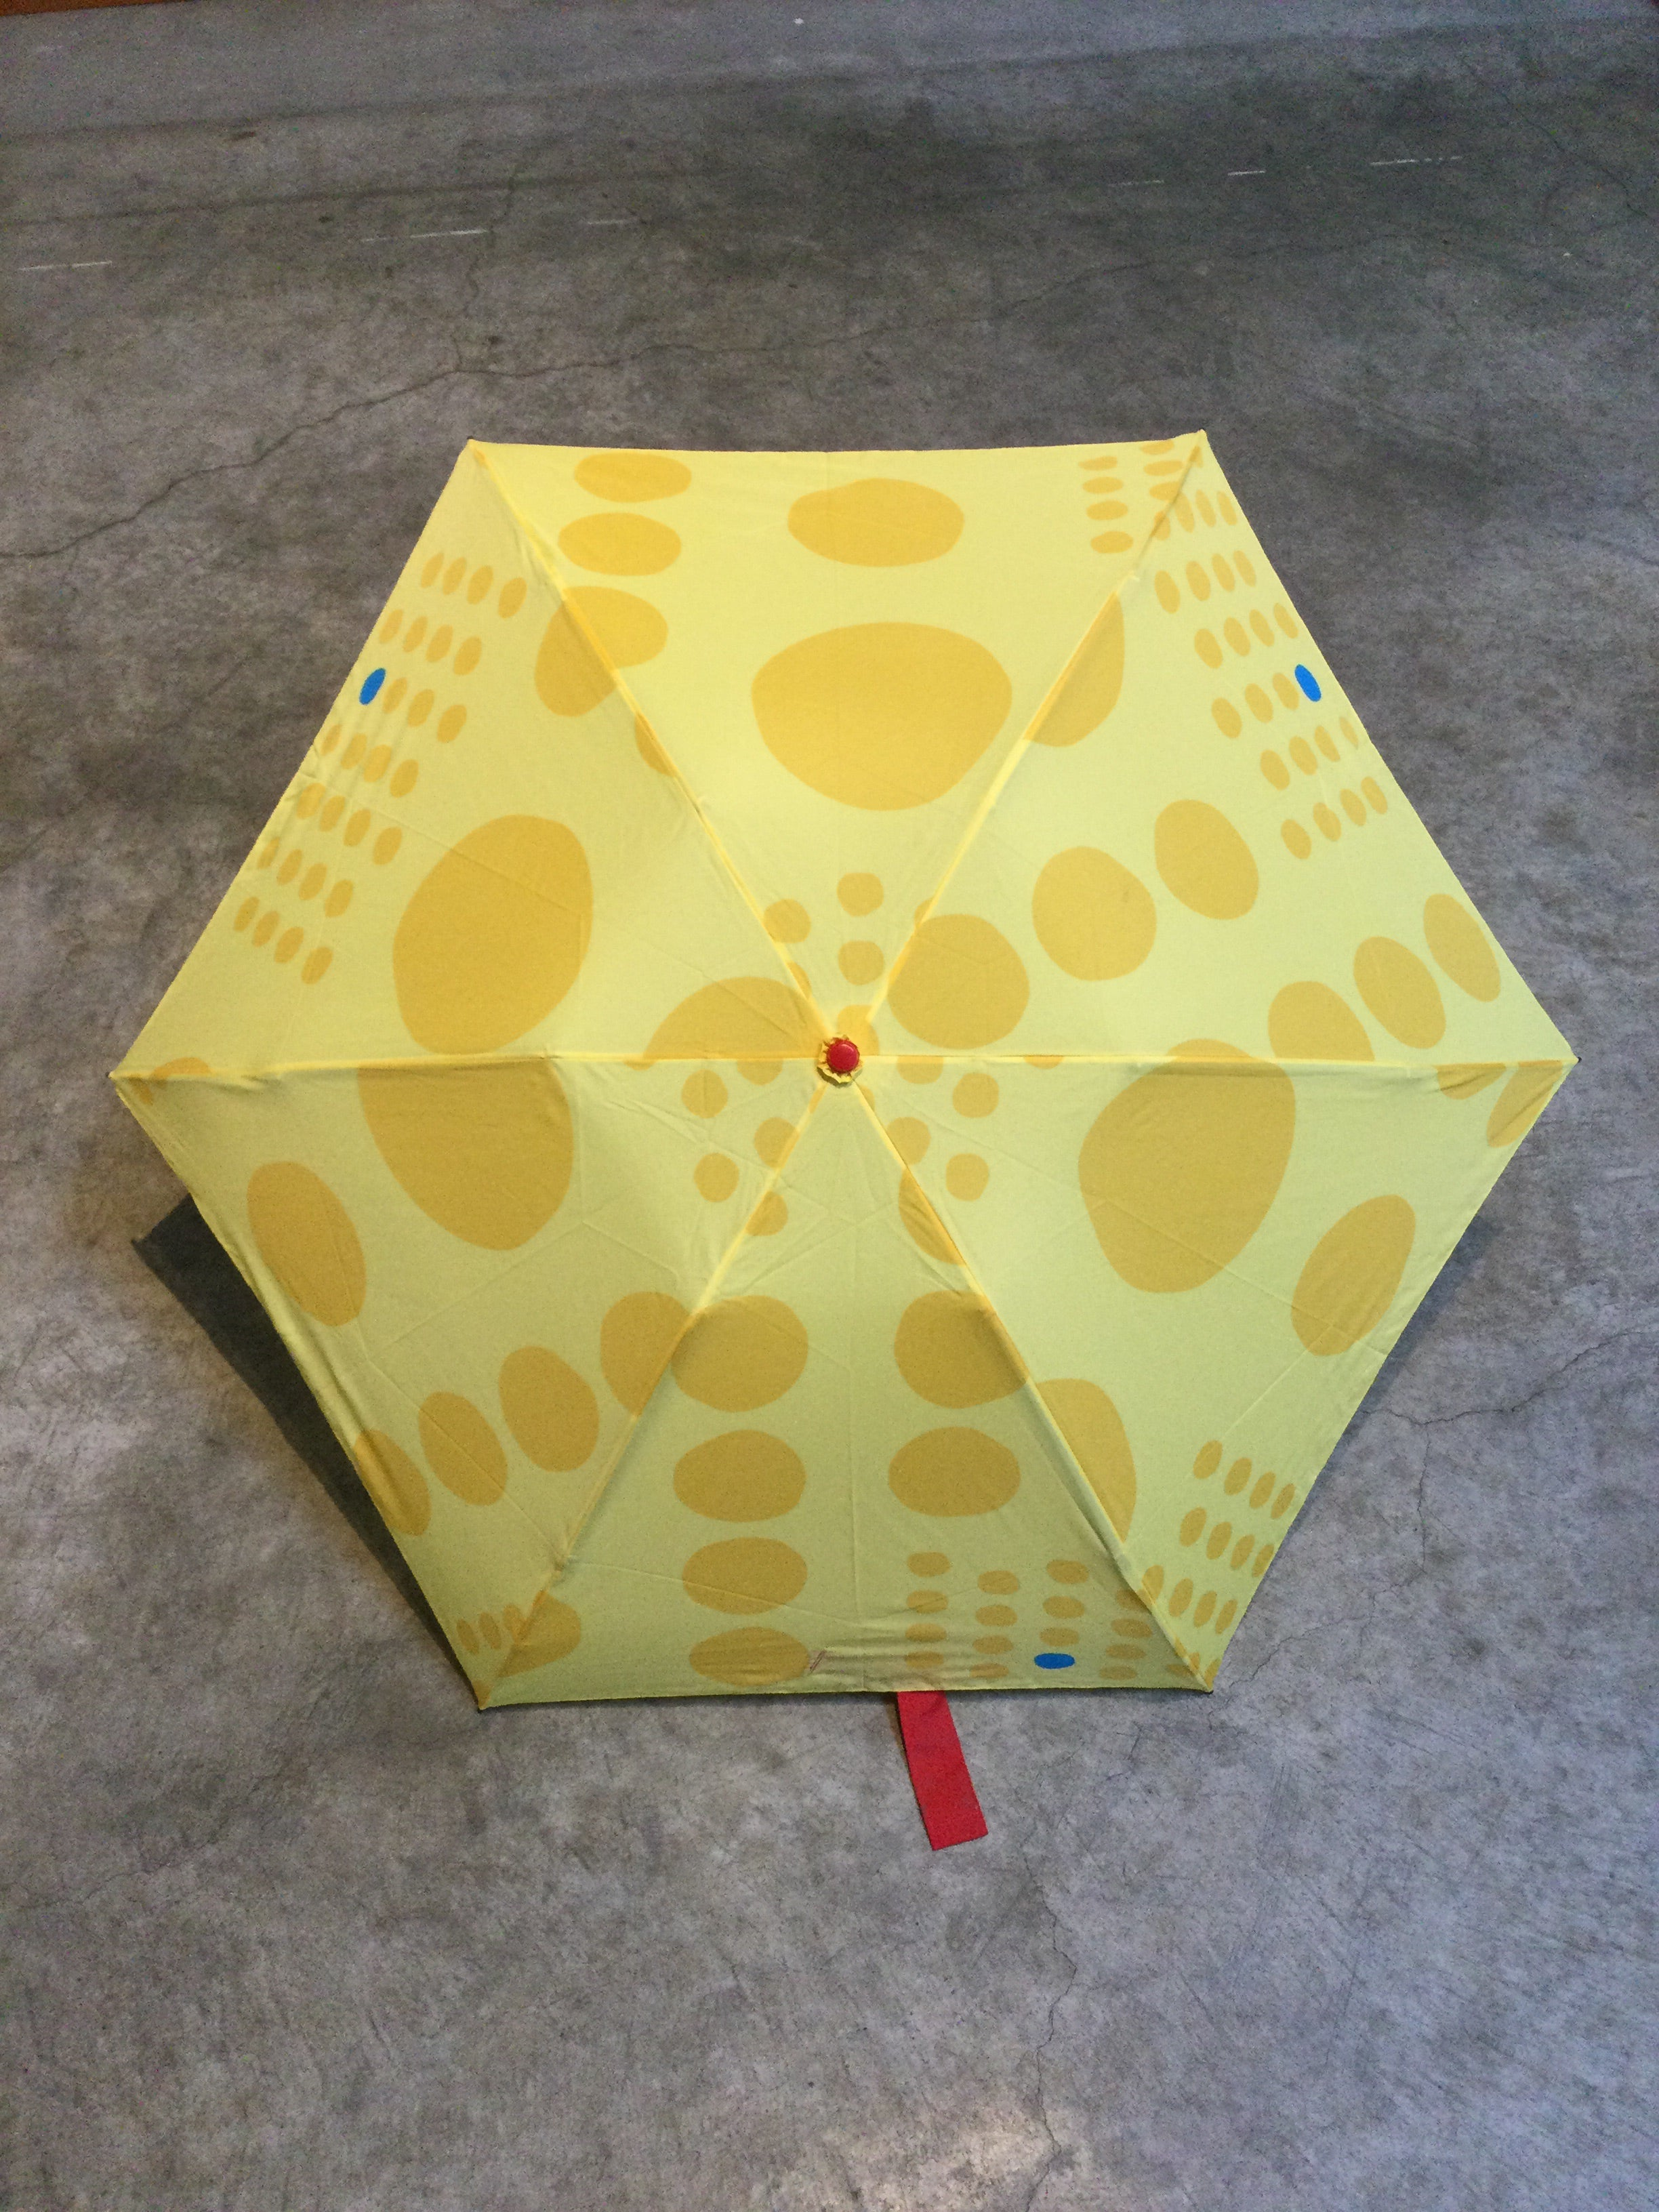 Mikuni - Yellow Umbrella